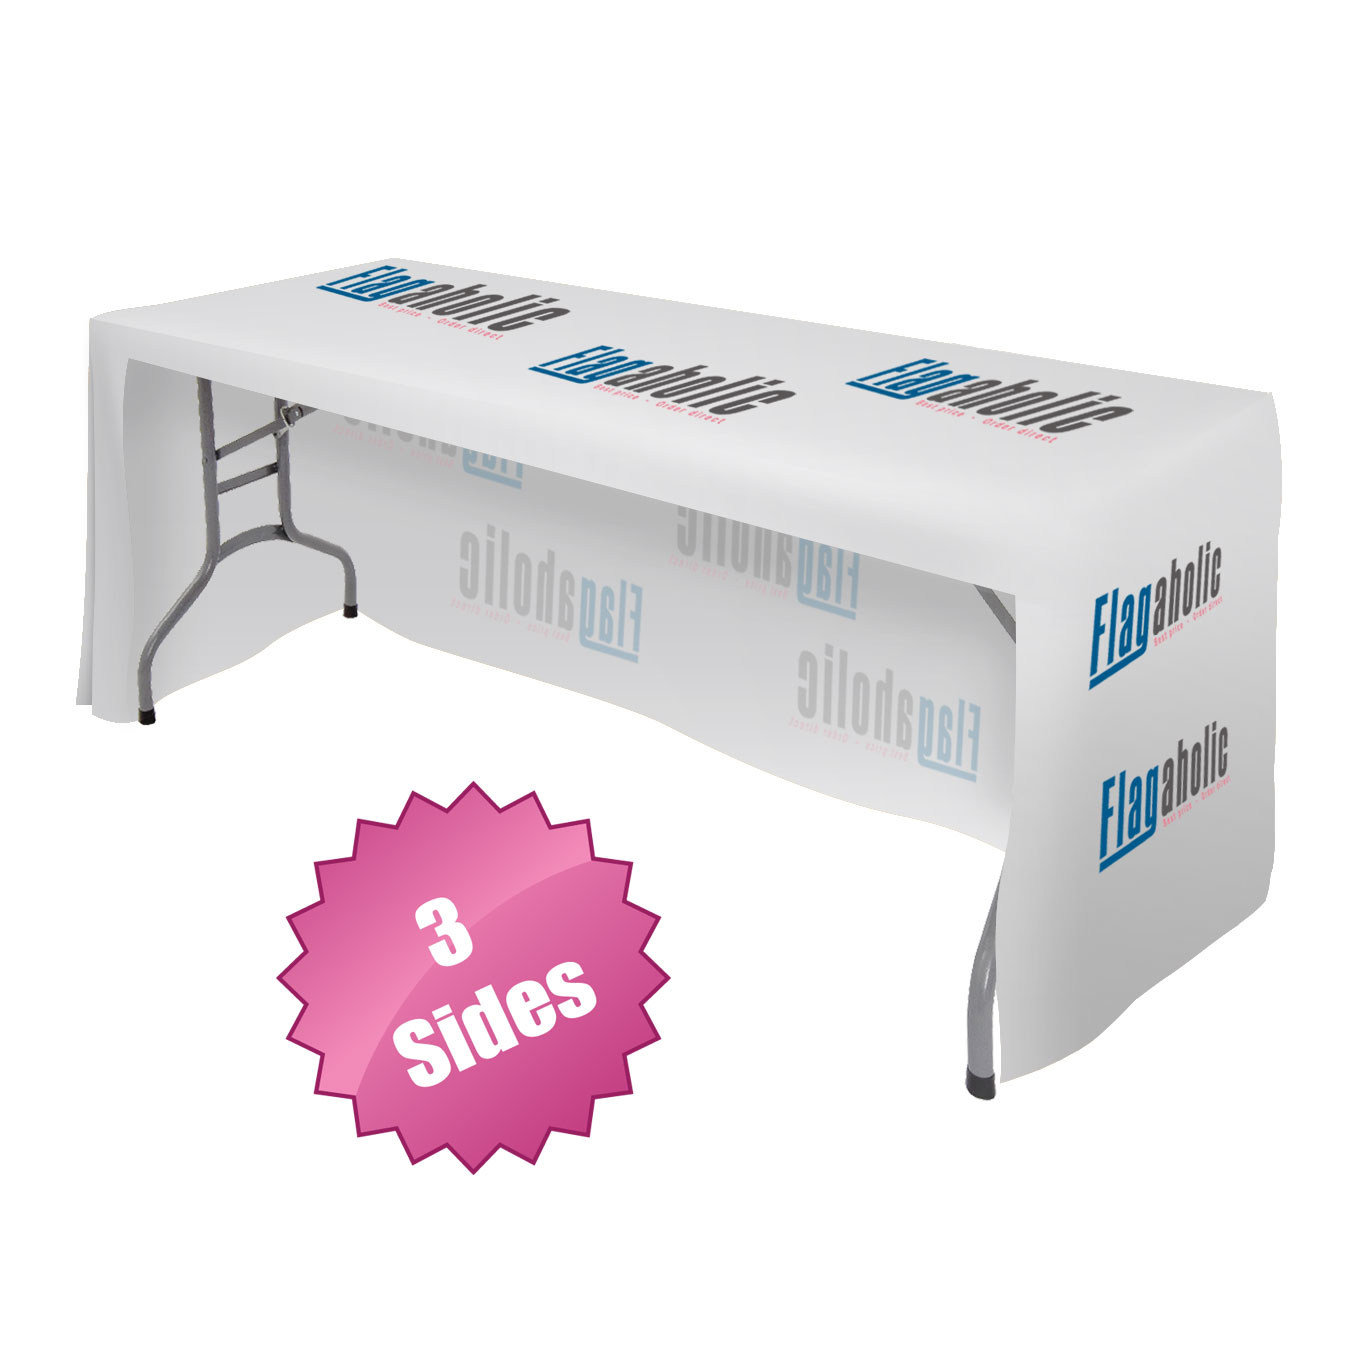 High definition fitted table throws fitted table cover for Html table definition